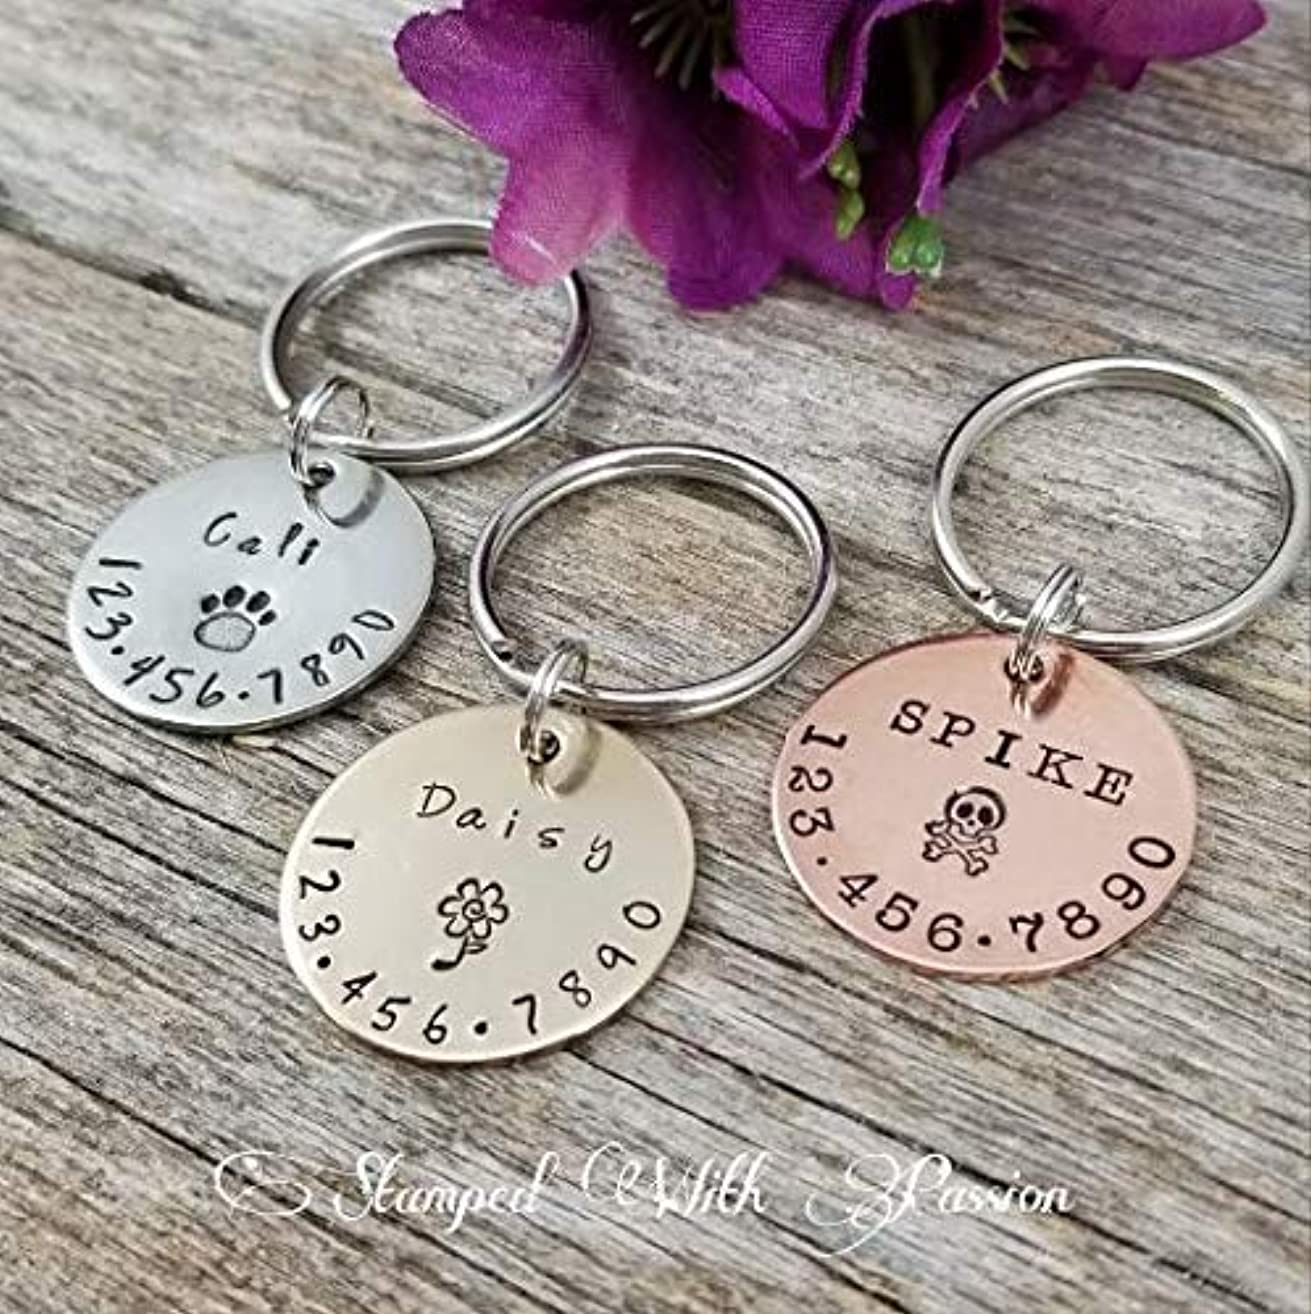 Pet Id Tag, Personalized Dog and Cat Tags, Dog Id Tag, Cat Id Tag, Dog collar tag, Cat collar tag, Silver, Copper and Bronze